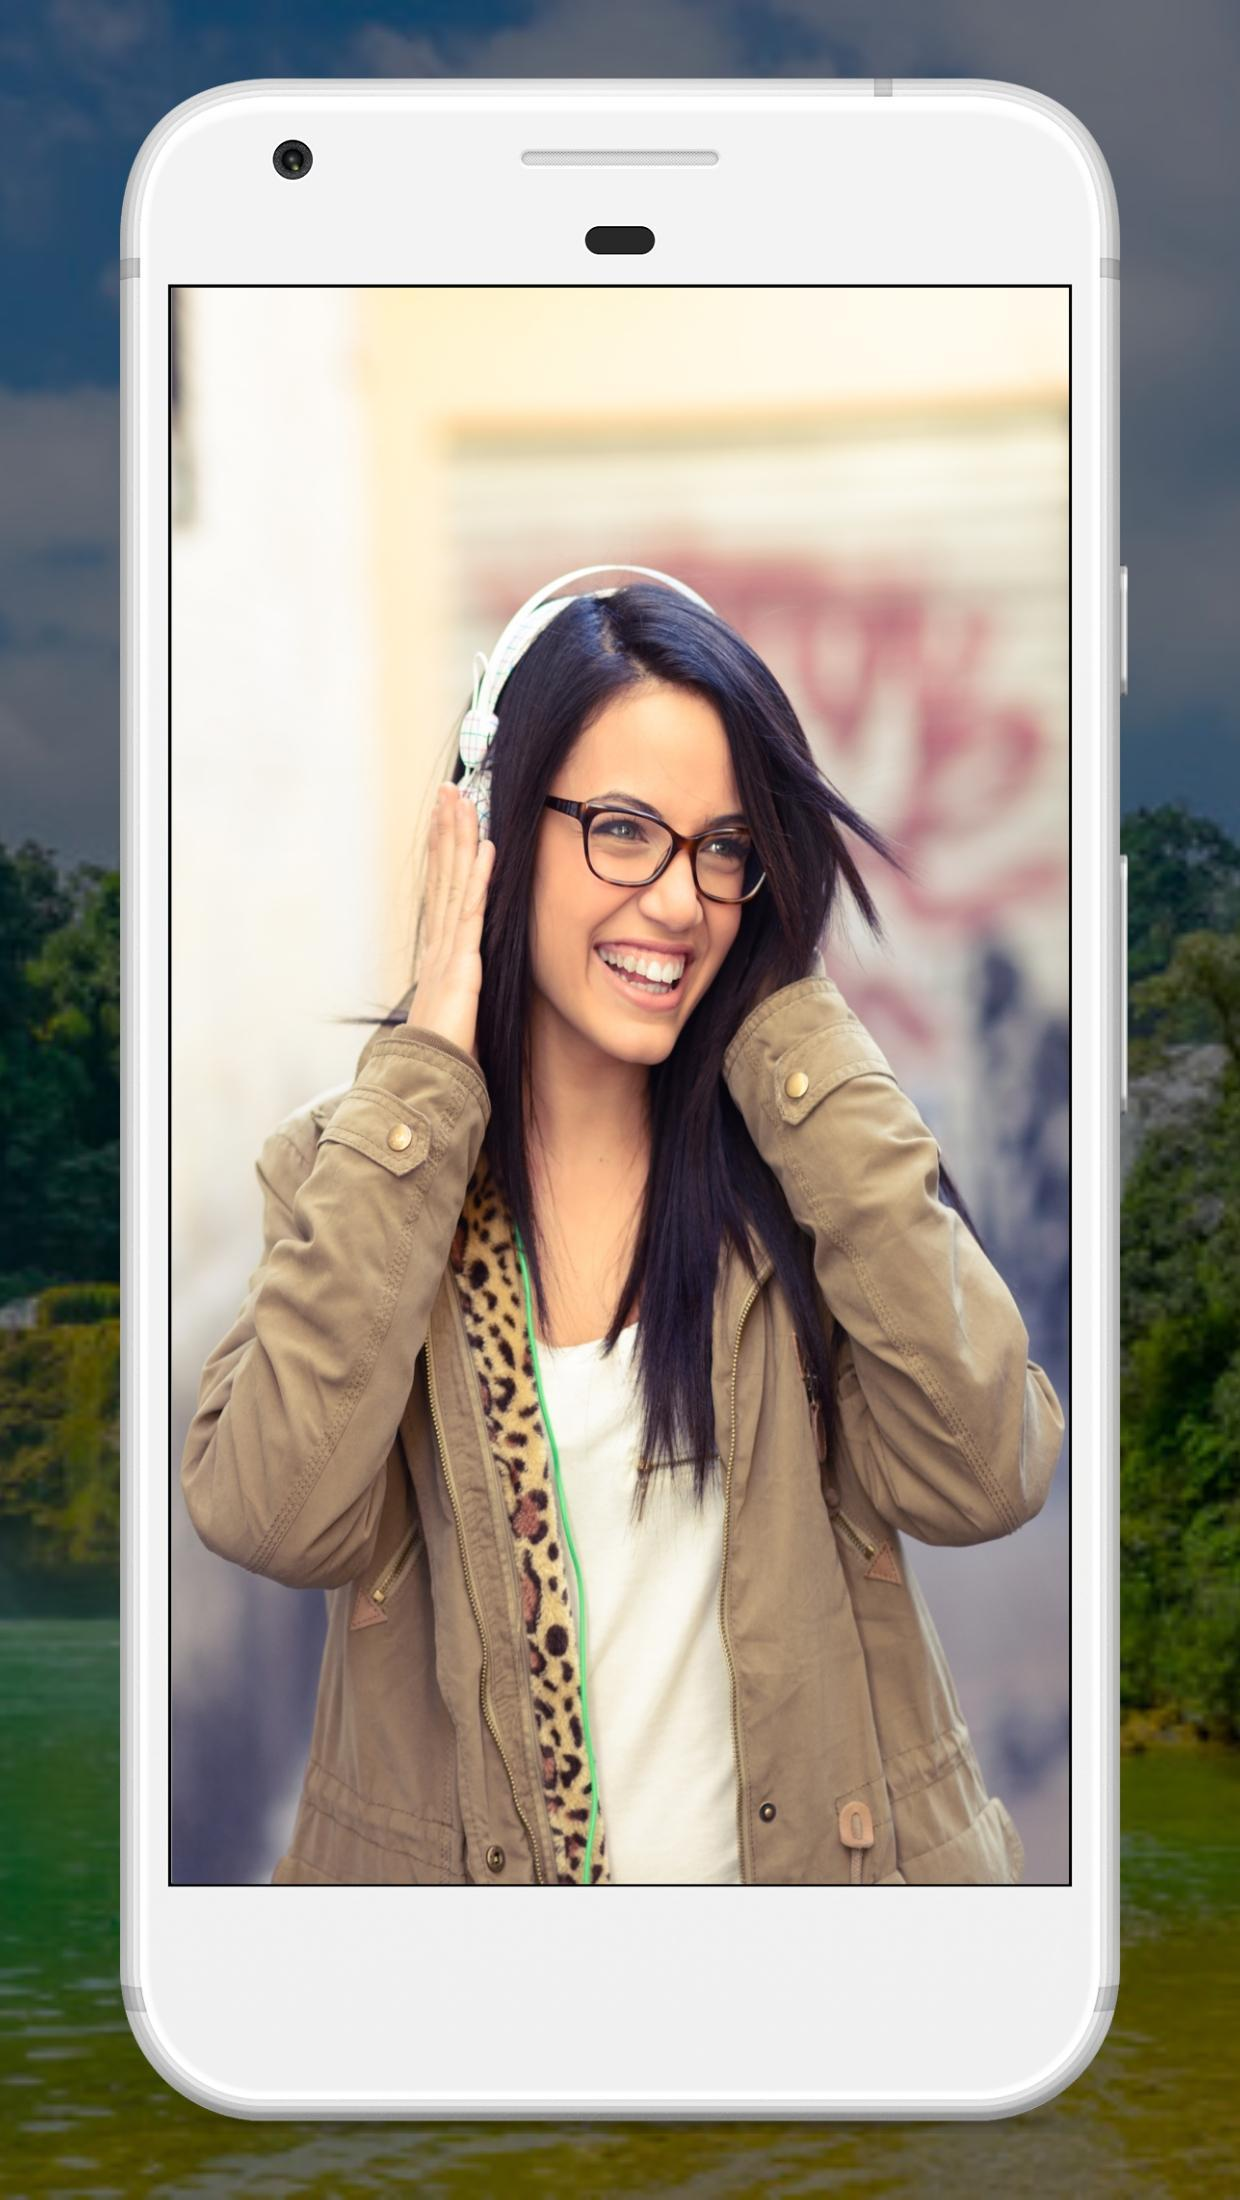 Radio To hear Music Free App Online Streaming for Android - APK Download